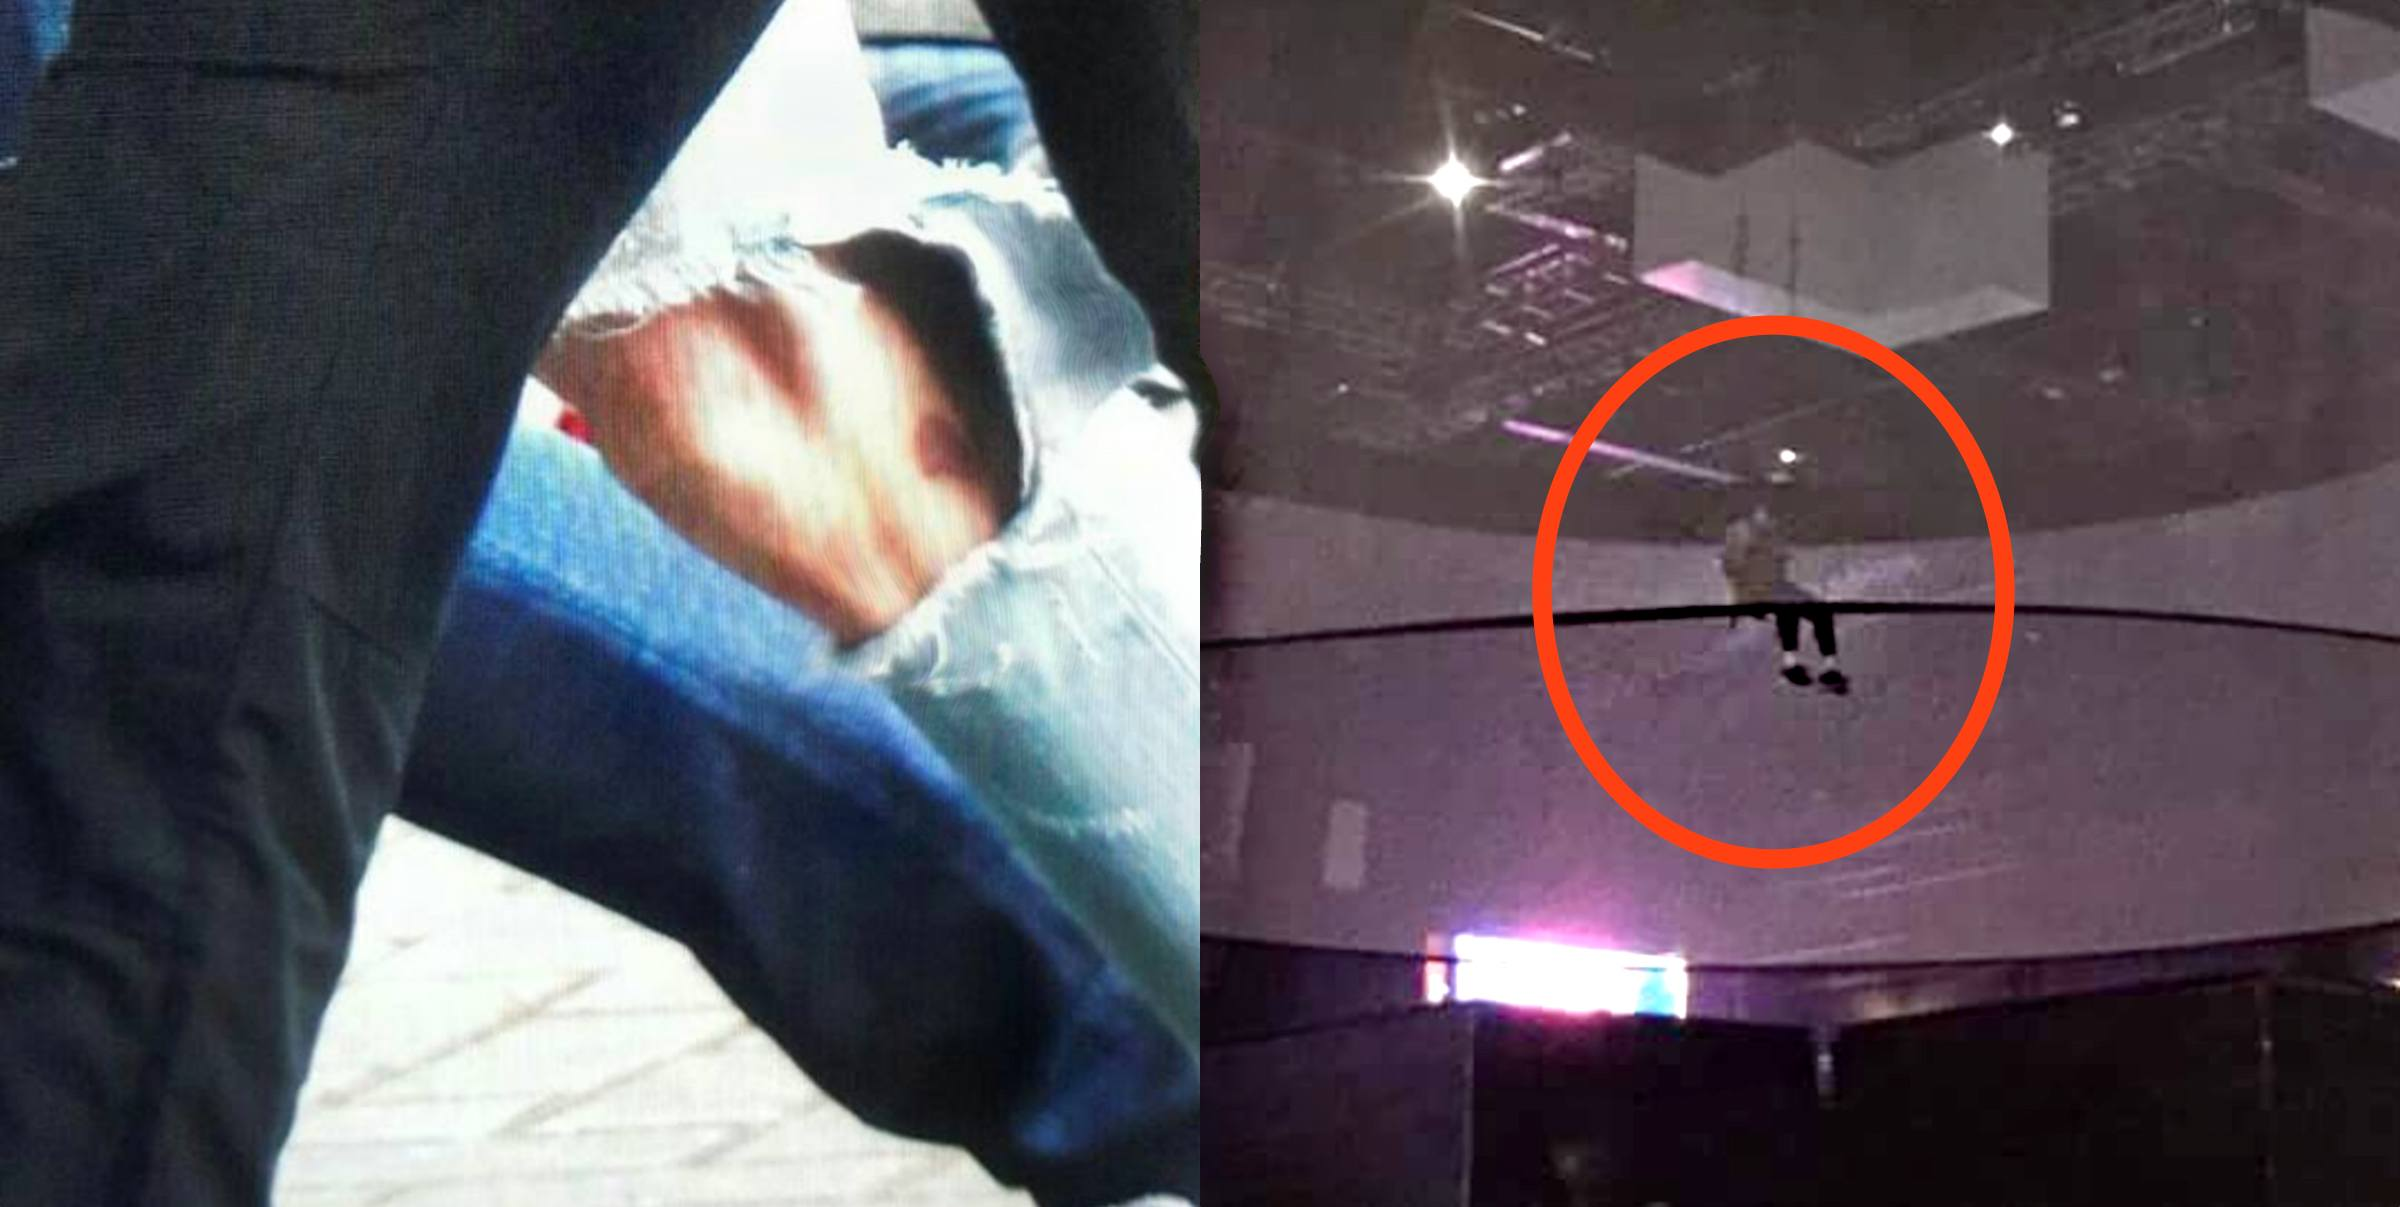 BTS Jungkook Injures Leg After Alleged Flying Stunt Accident